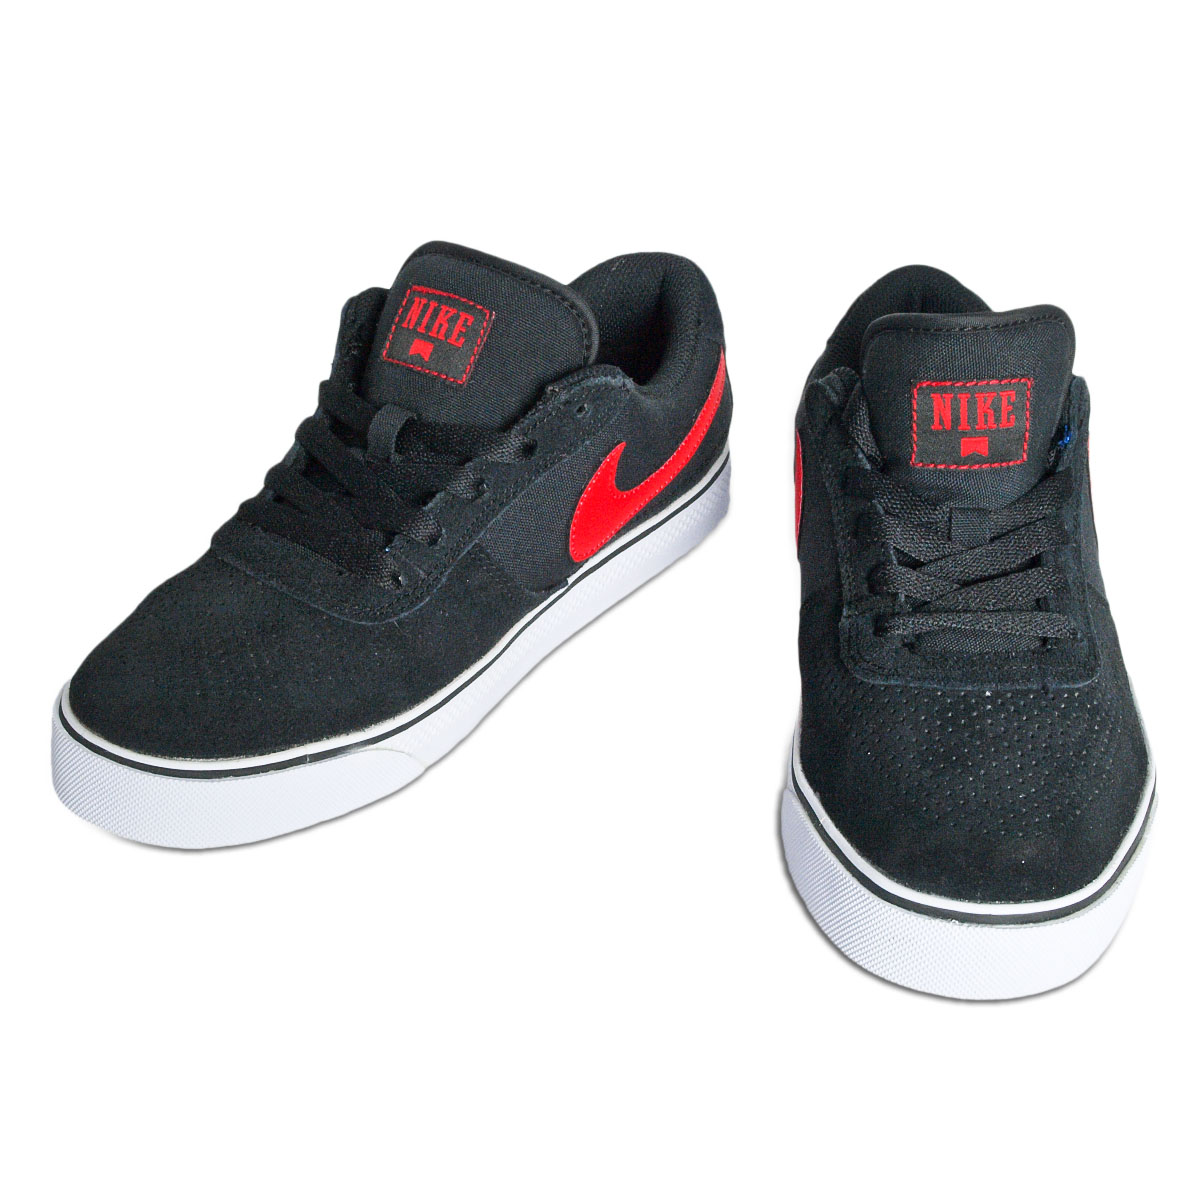 Image is loading NIKE-Mens-Mavrk-Low-2-Shoes-Size-UK-